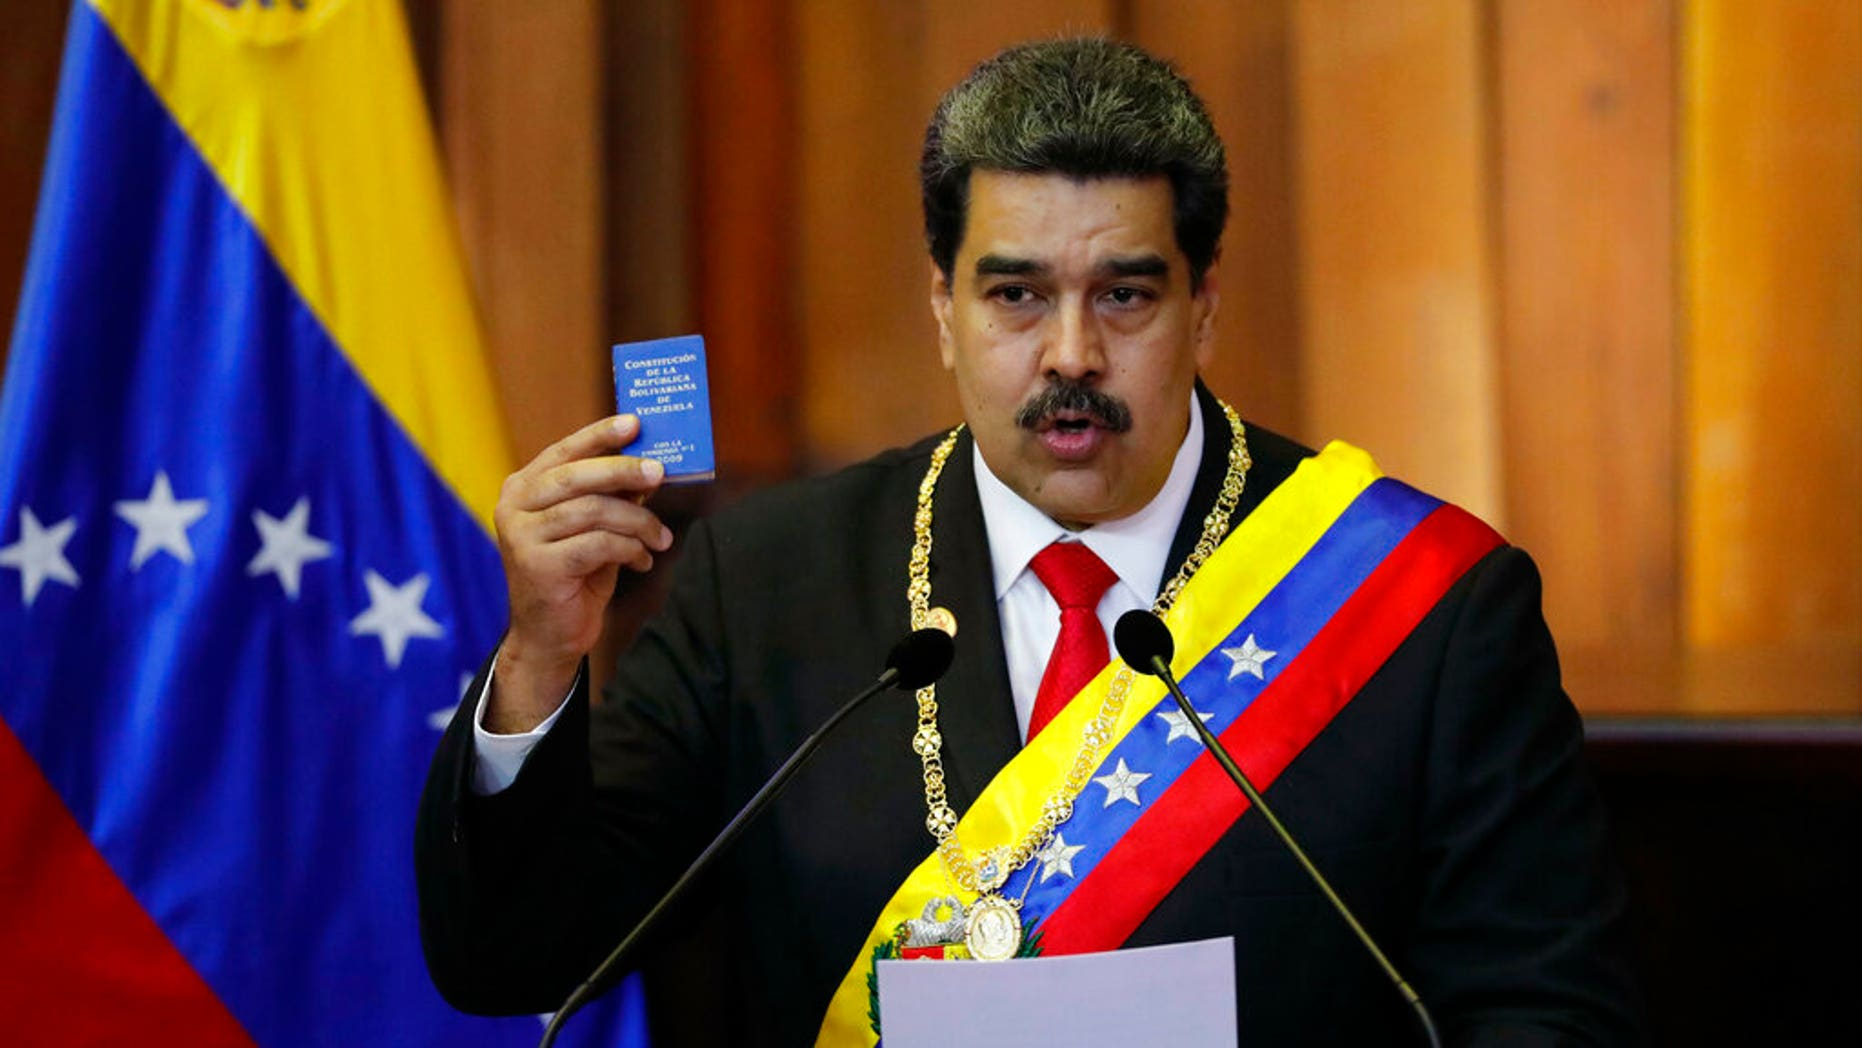 FILE - In this Jan. 10, 2019, file photo, Venezuela's President Nicolas Maduro holds up a small copy of the constitution as he speaks during his swearing-in ceremony at the Supreme Court in Caracas, Venezuela. (AP